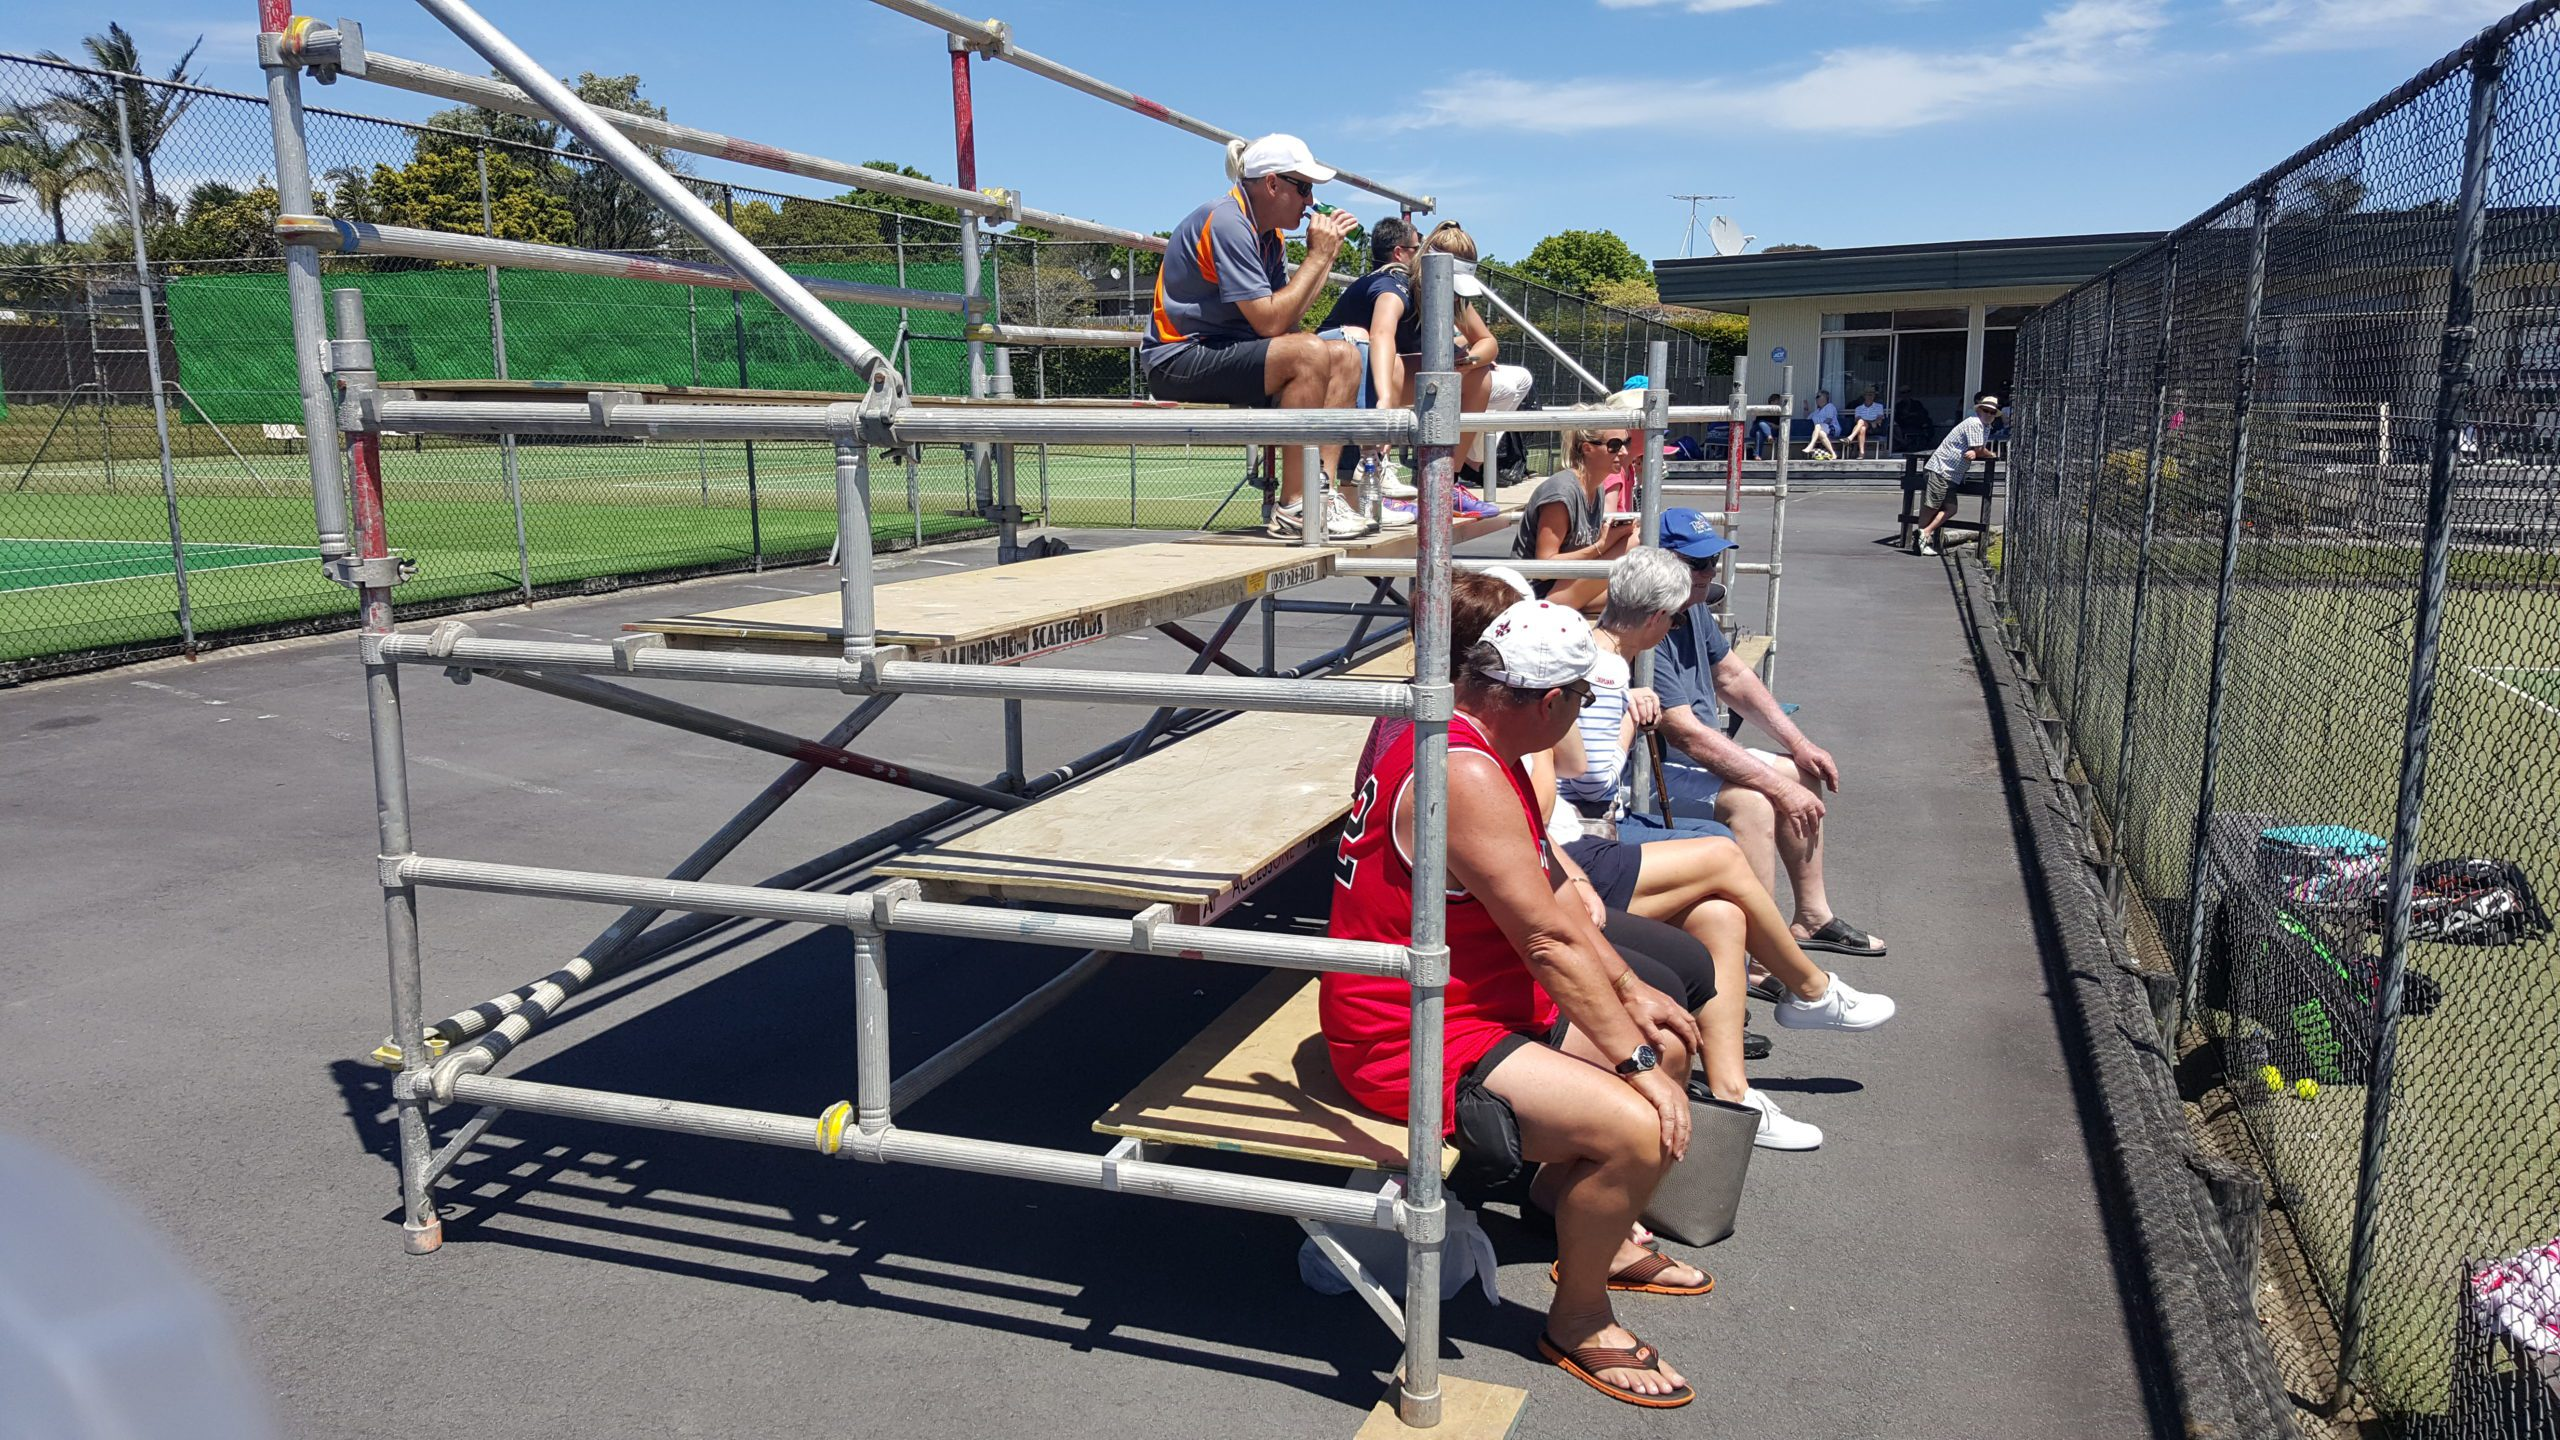 Sunnyhills Tennis Club Seating Donated by Access One Scaffolding